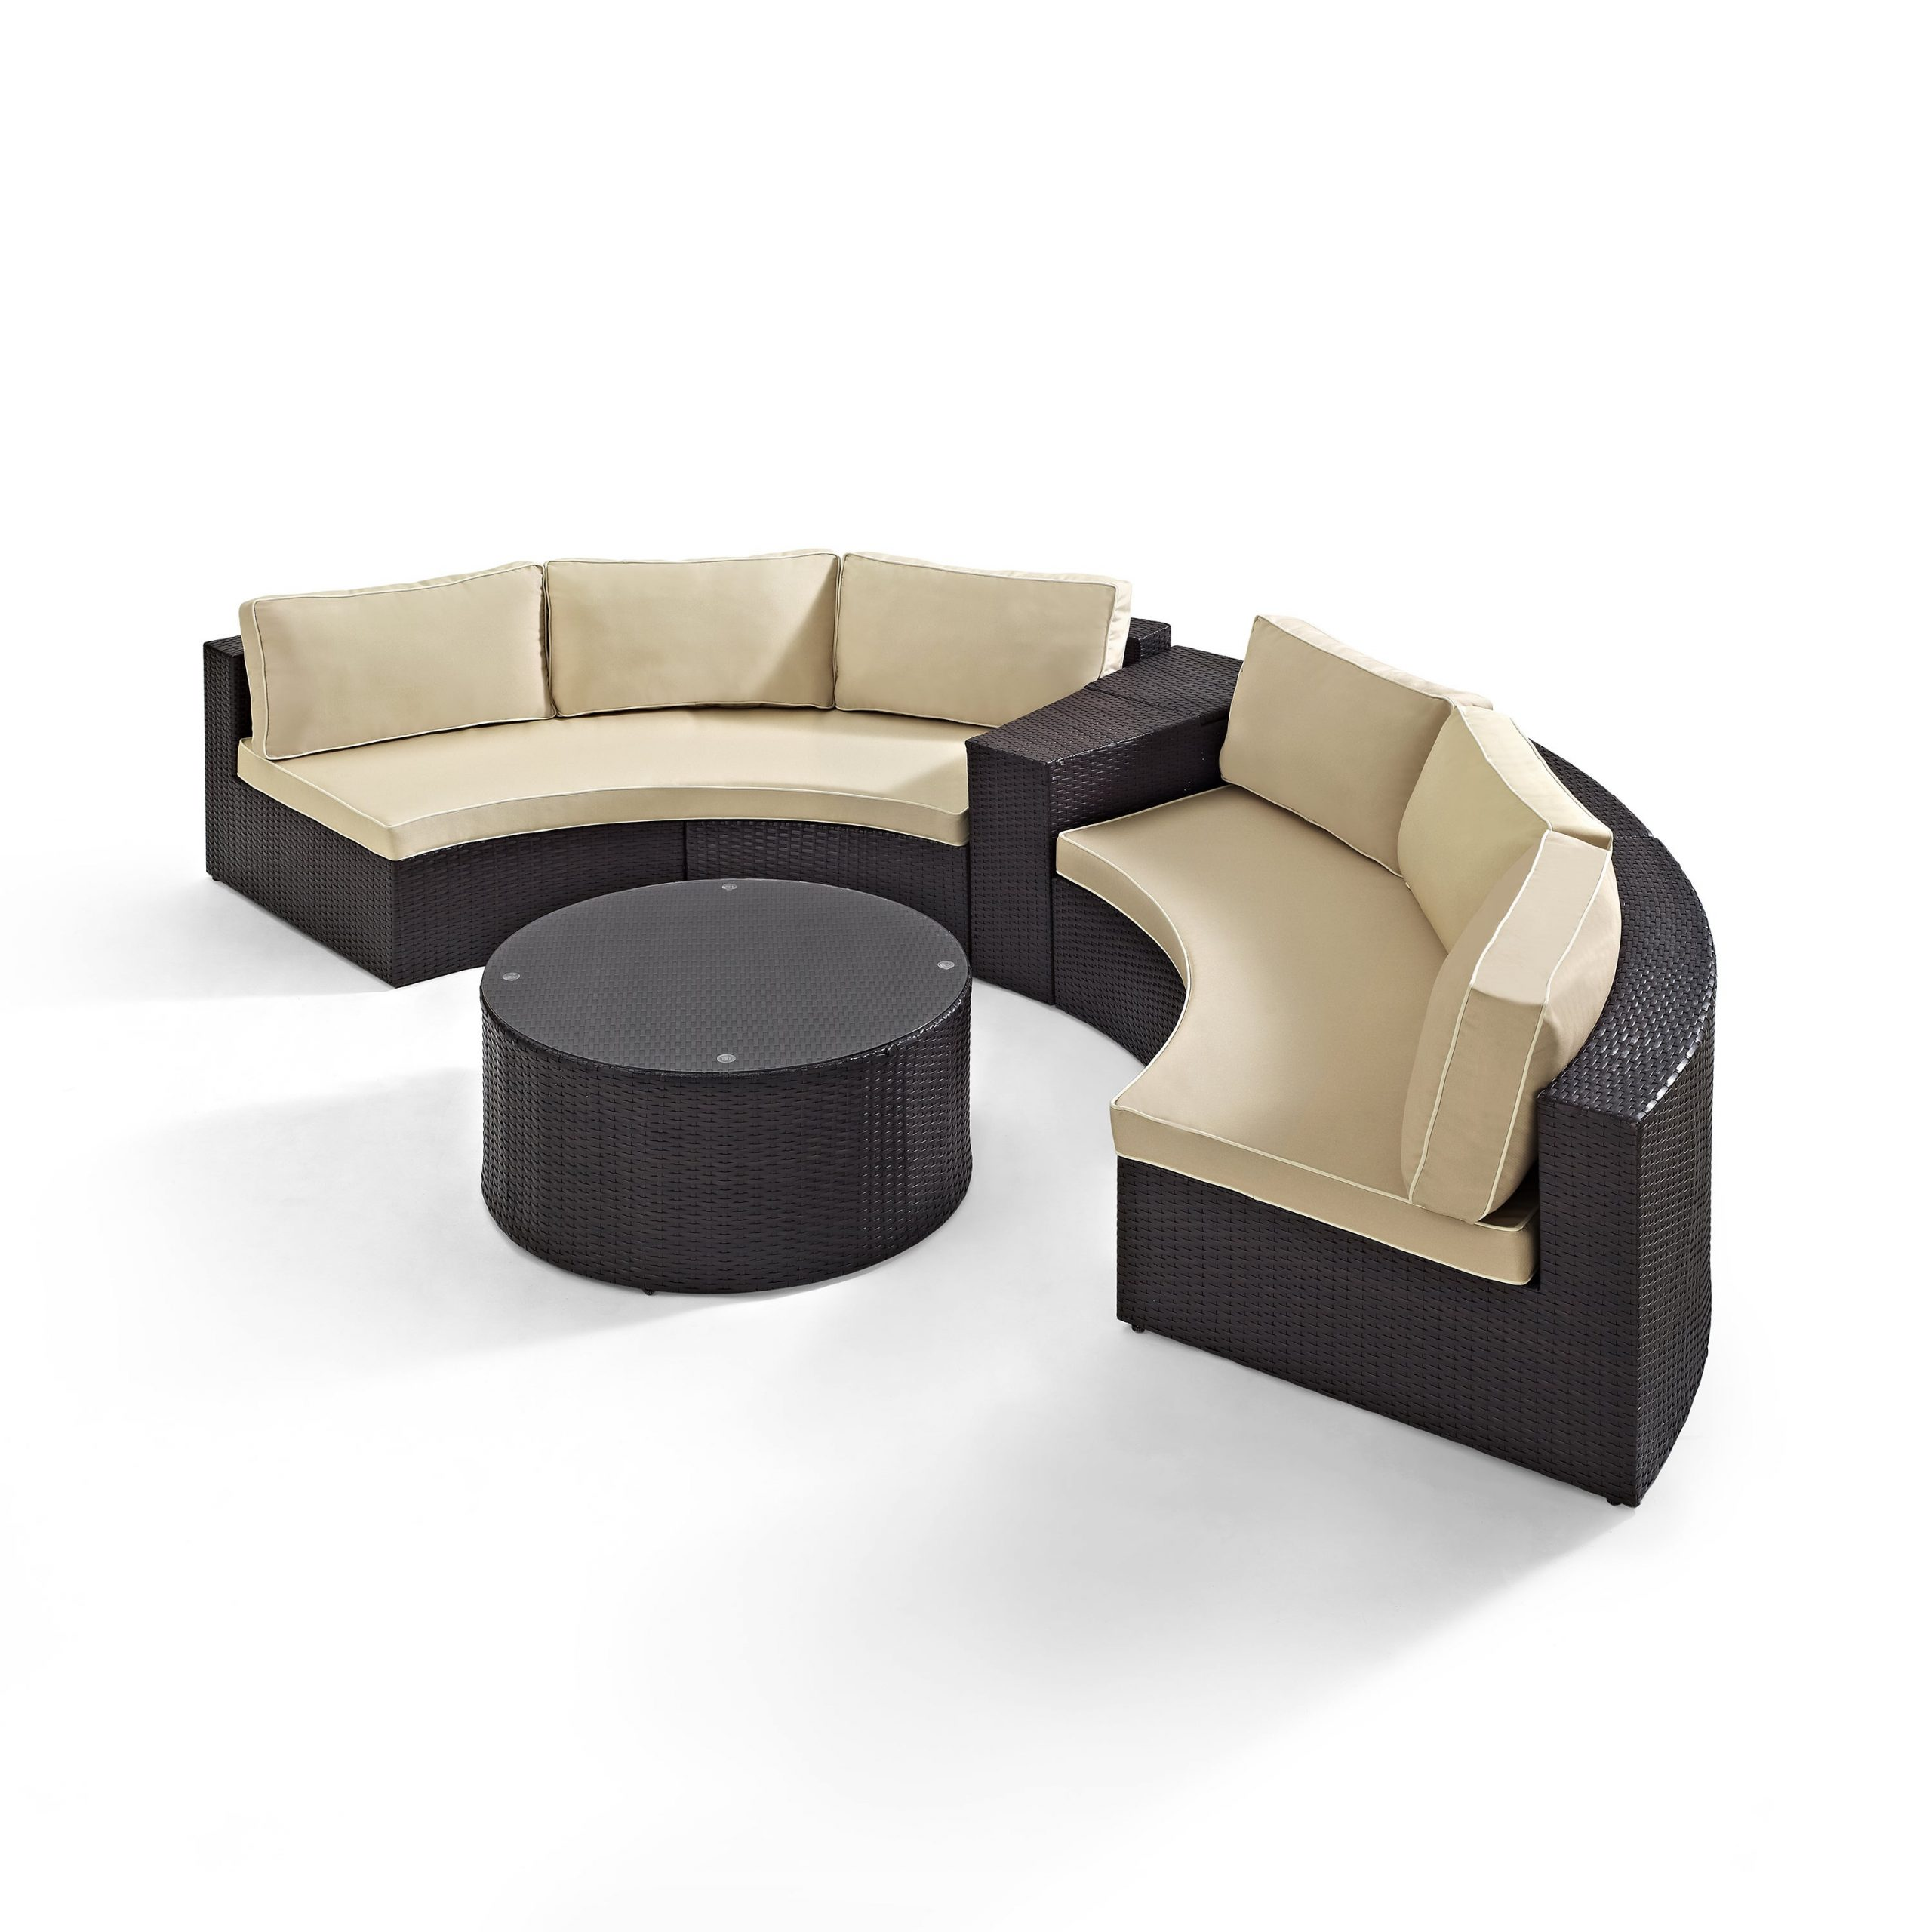 Catalina 4 Piece Outdoor Wicker Seating Set With Sand Cushions Two Round Sectional Sofas,arm Table,and Glass Top Coffee Table With Regard To Favorite Catalina Outdoor Right Arm Sectional Pieces With Cushions (View 4 of 25)